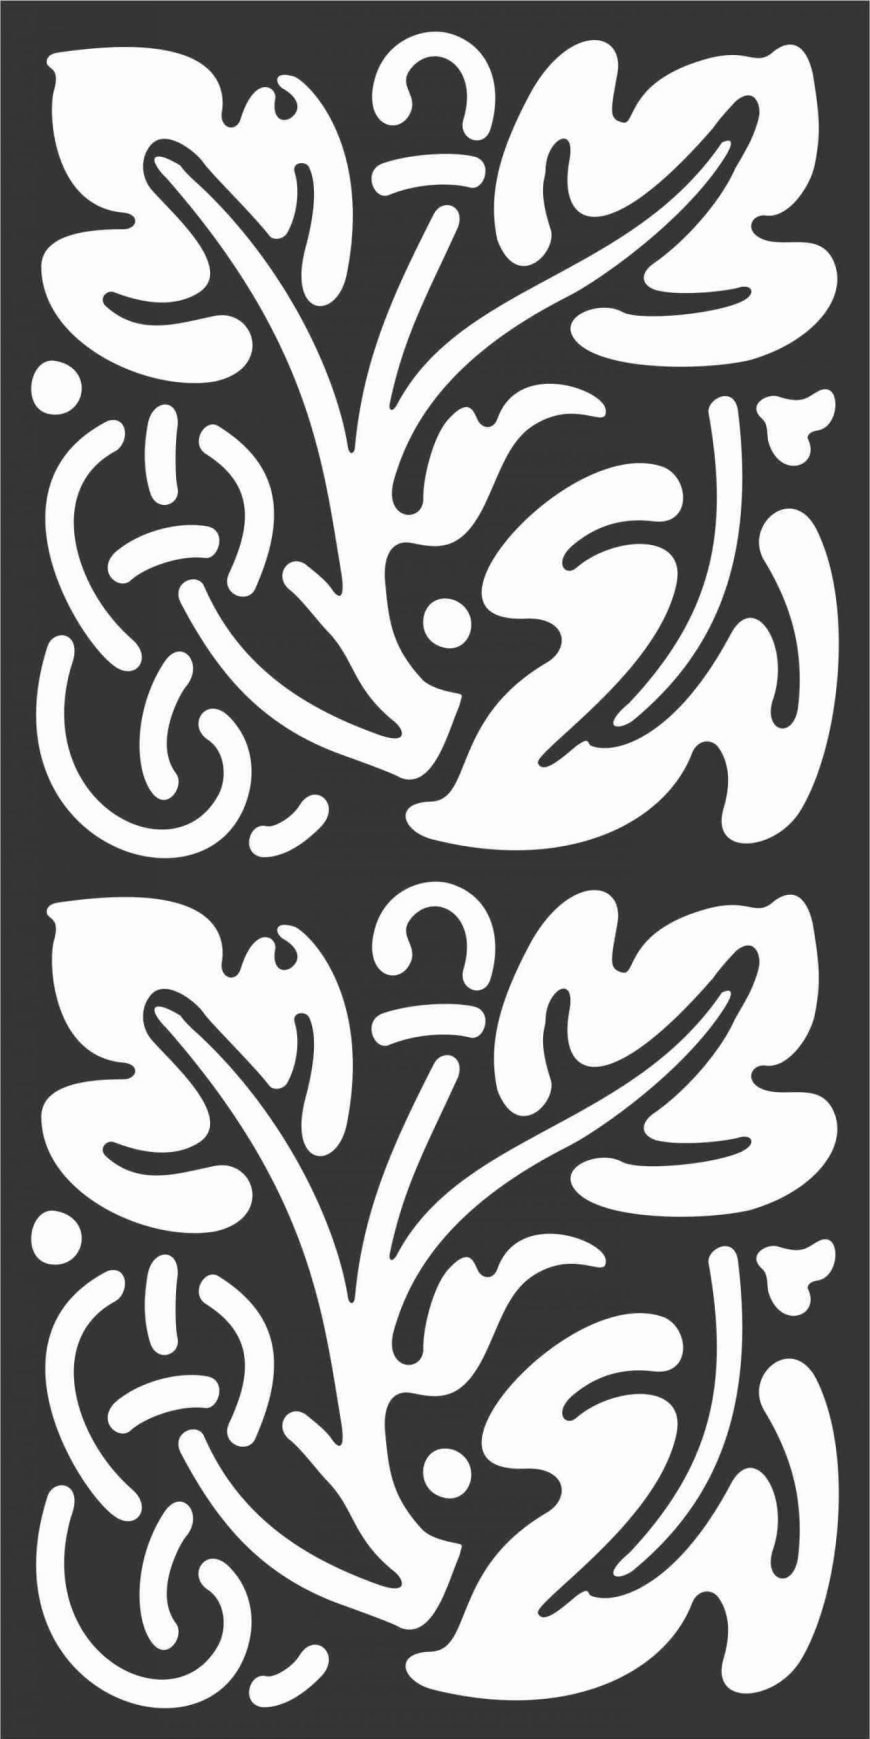 Floral Screen Patterns Design 54 Free DXF File